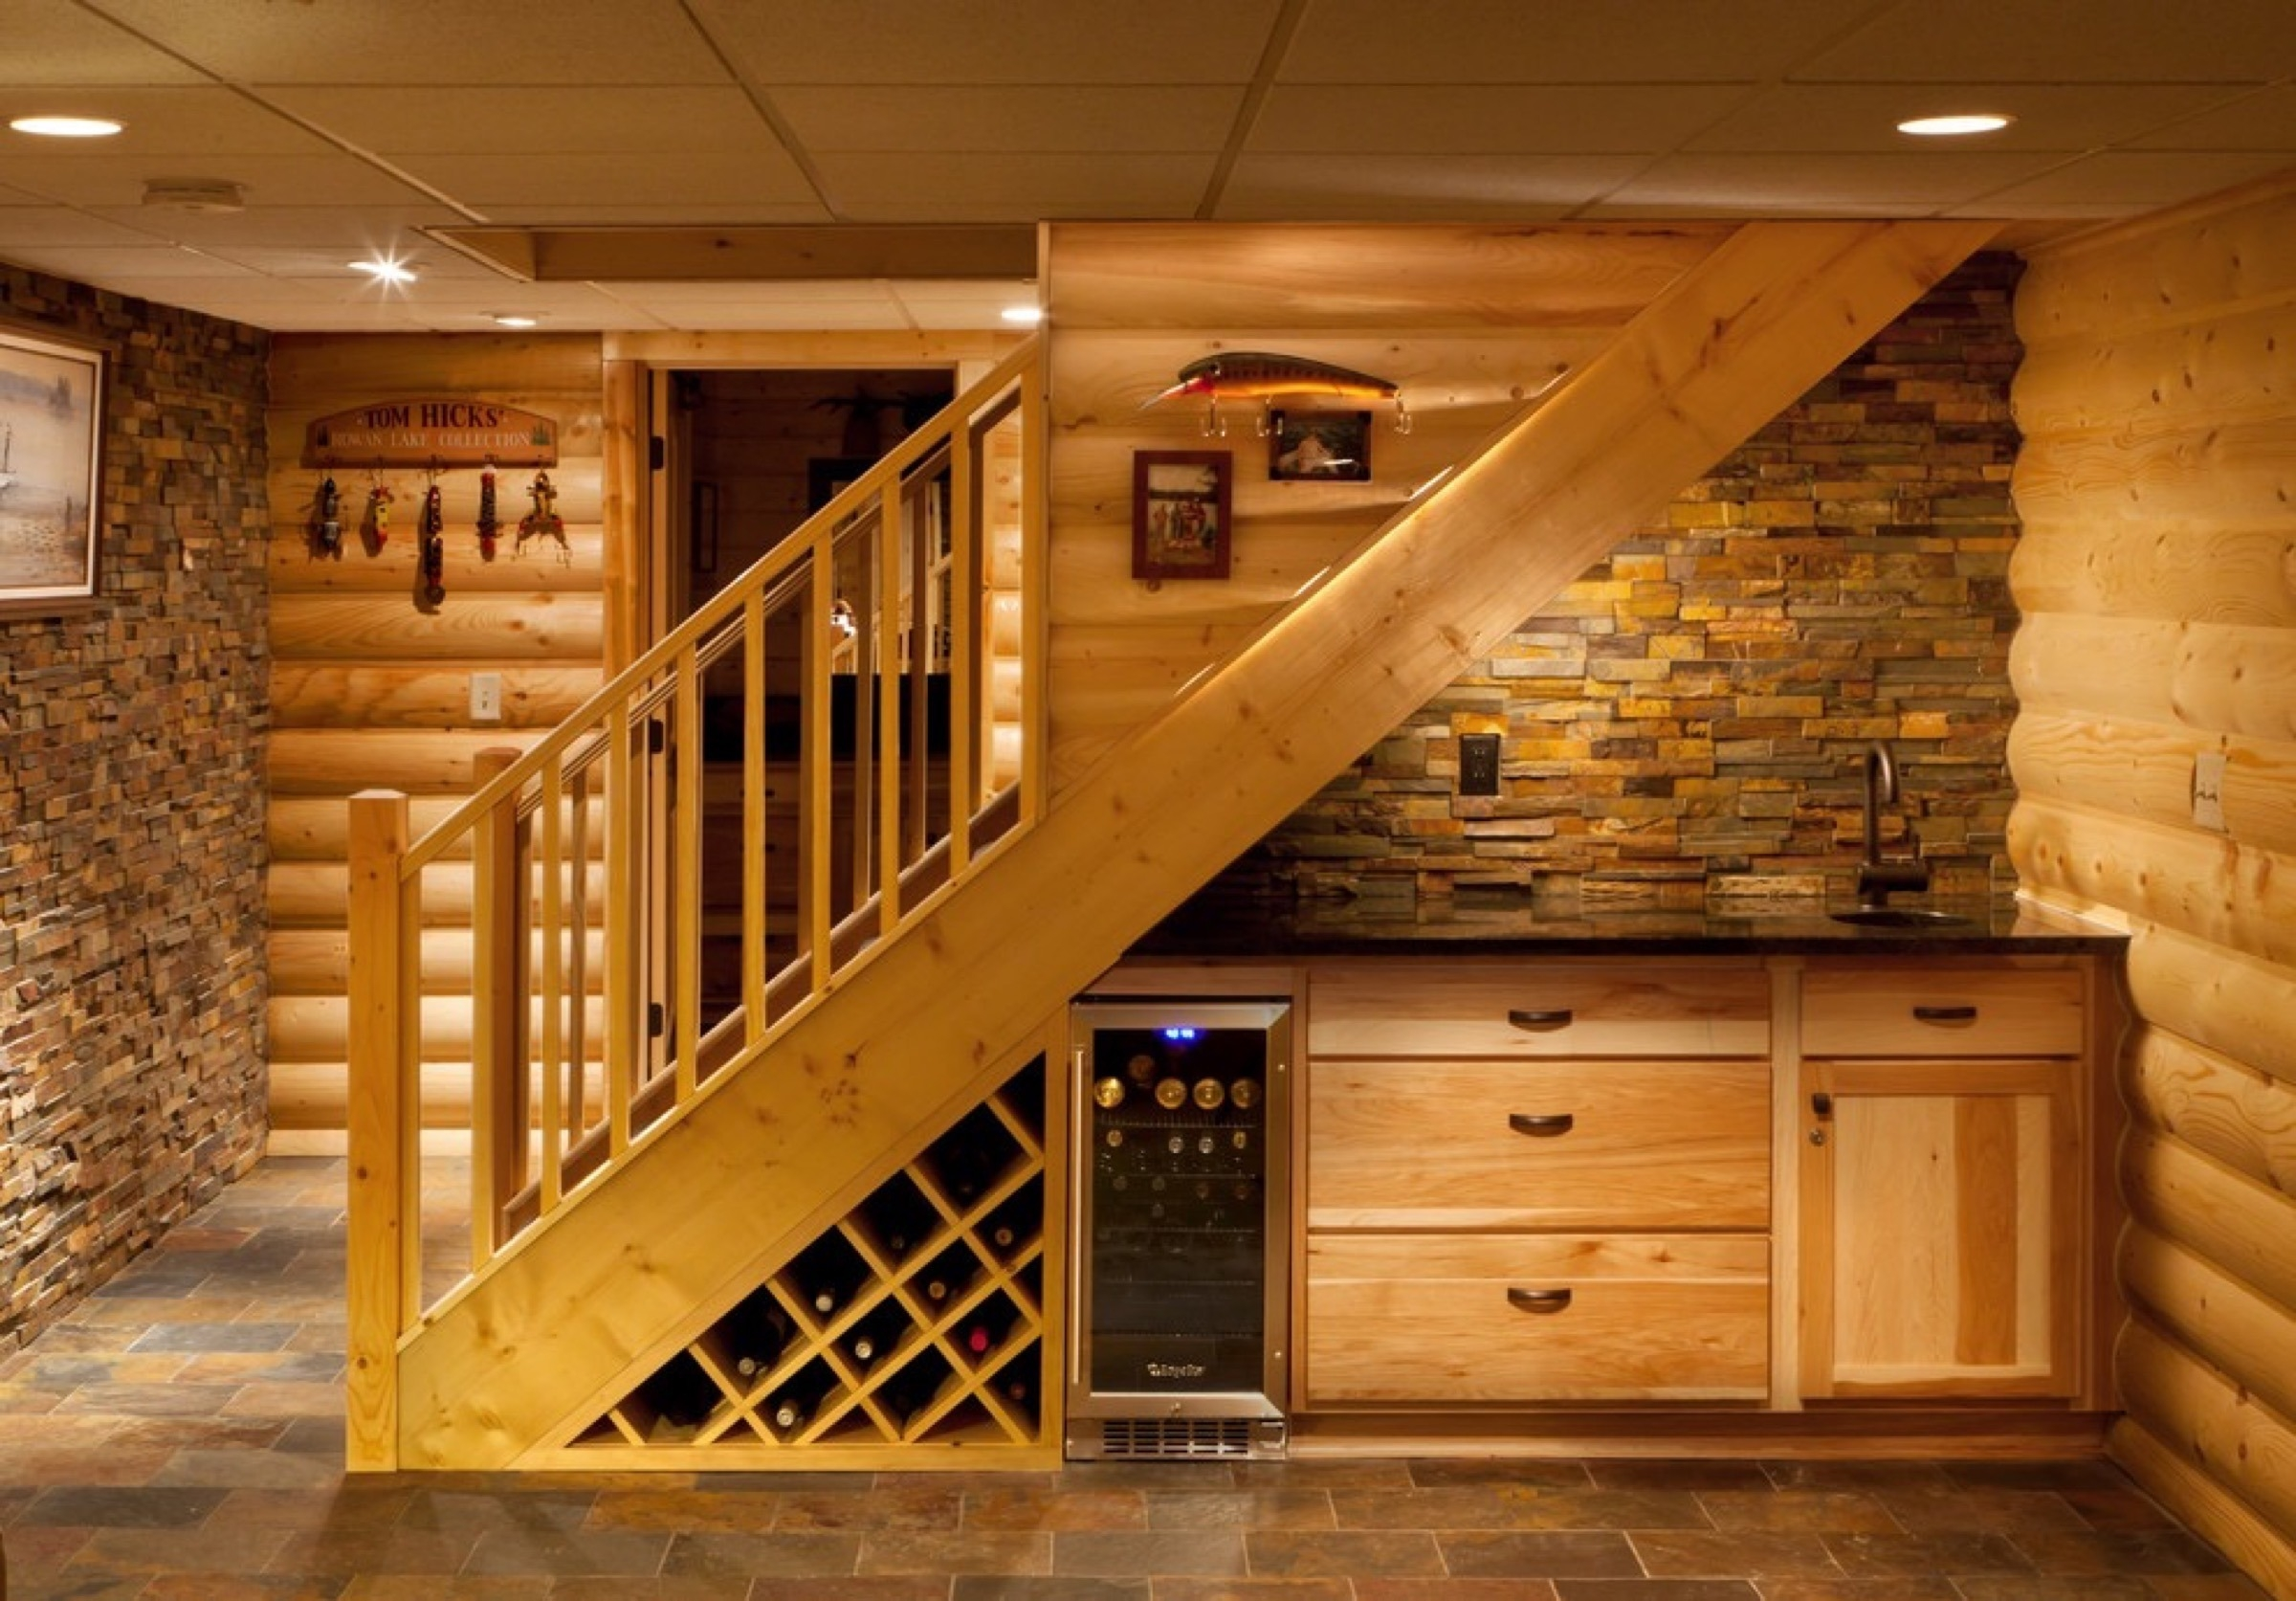 Basement Staircase Installation Costs Updated Prices In 2020 | Pre Built Wood Stairs | Exterior | Landing | Free Standing | Lvl | Basement